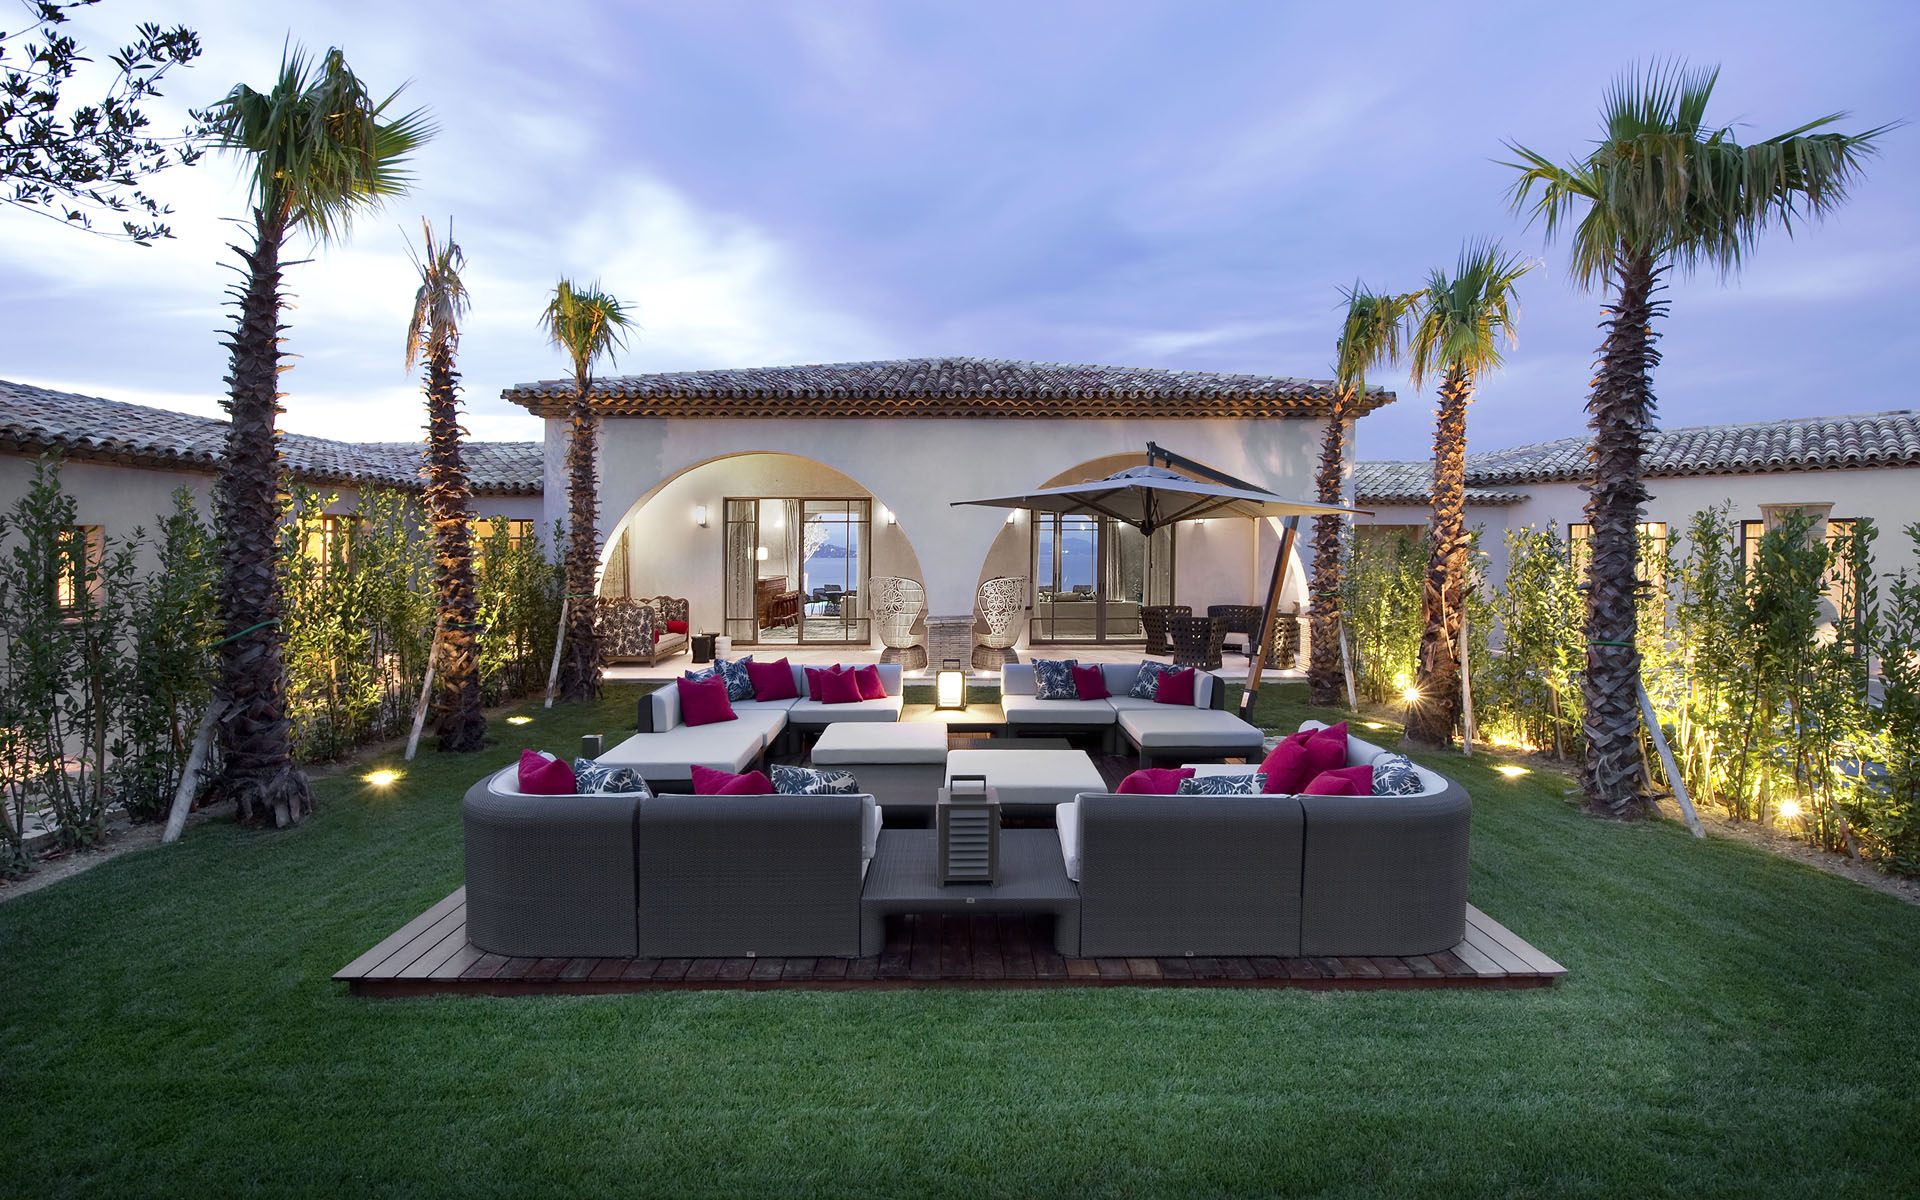 Outdoor Lounge At Dusk Interior Design Ideas